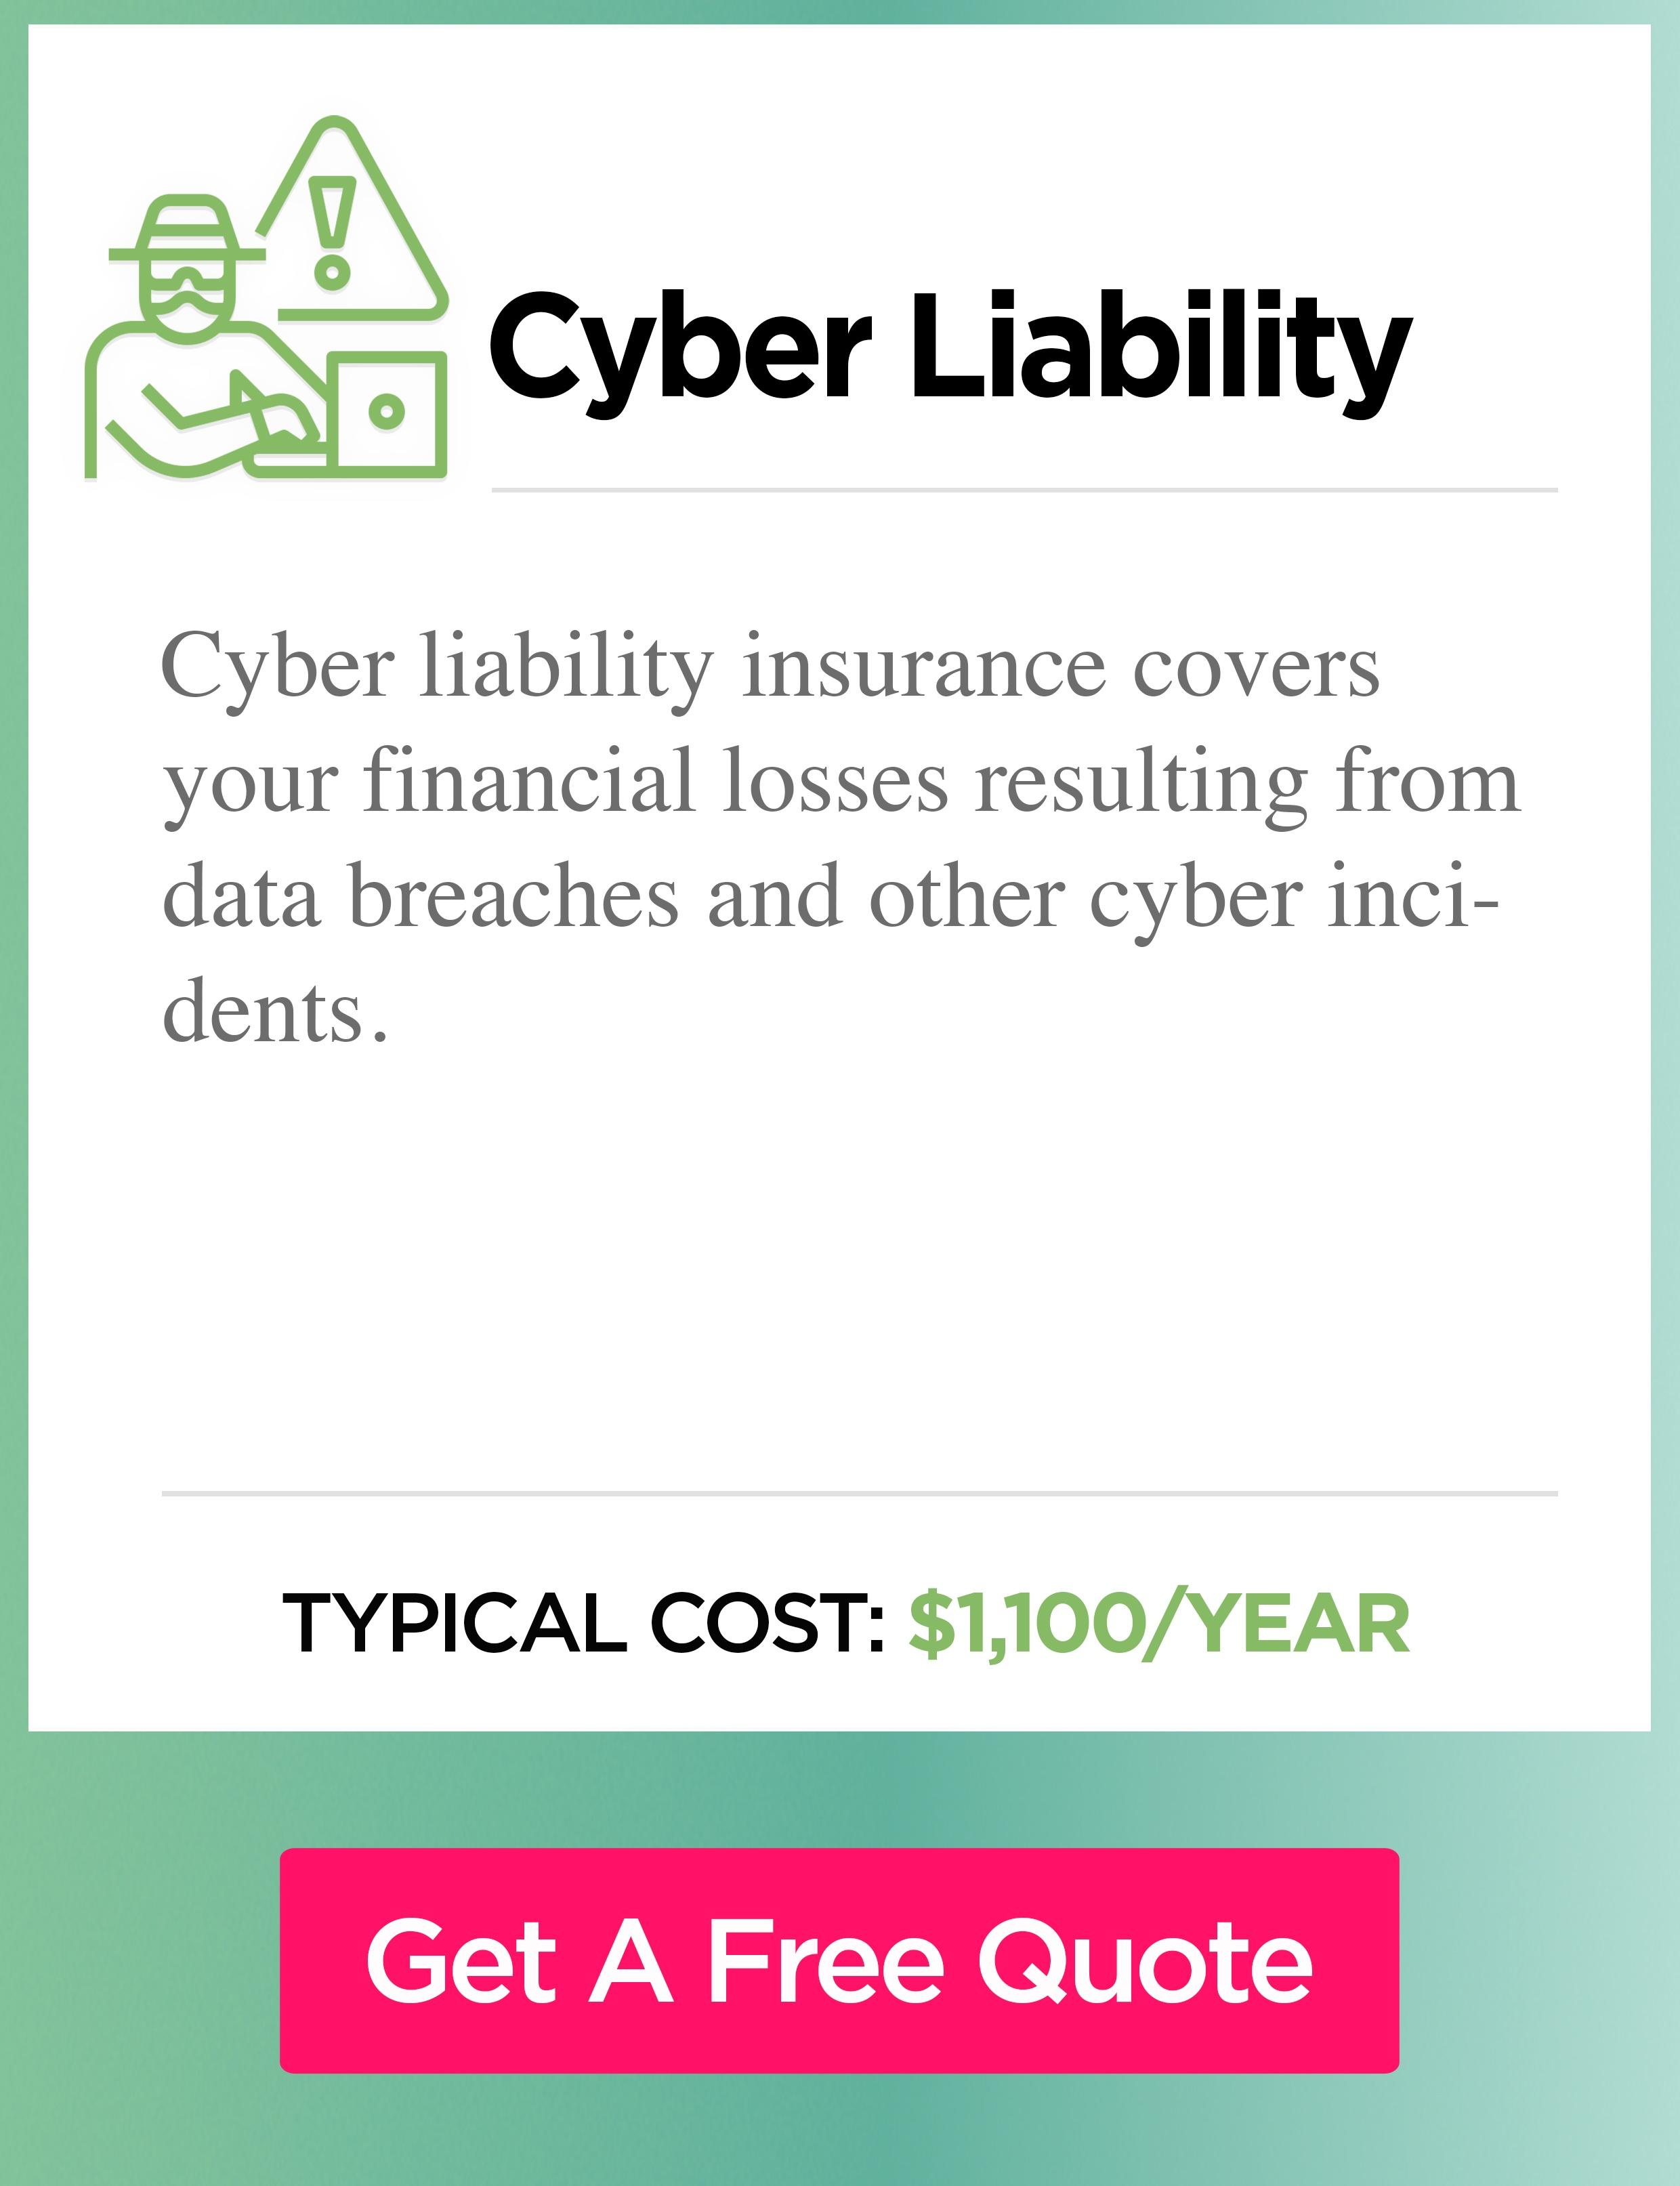 Cyber liability cost